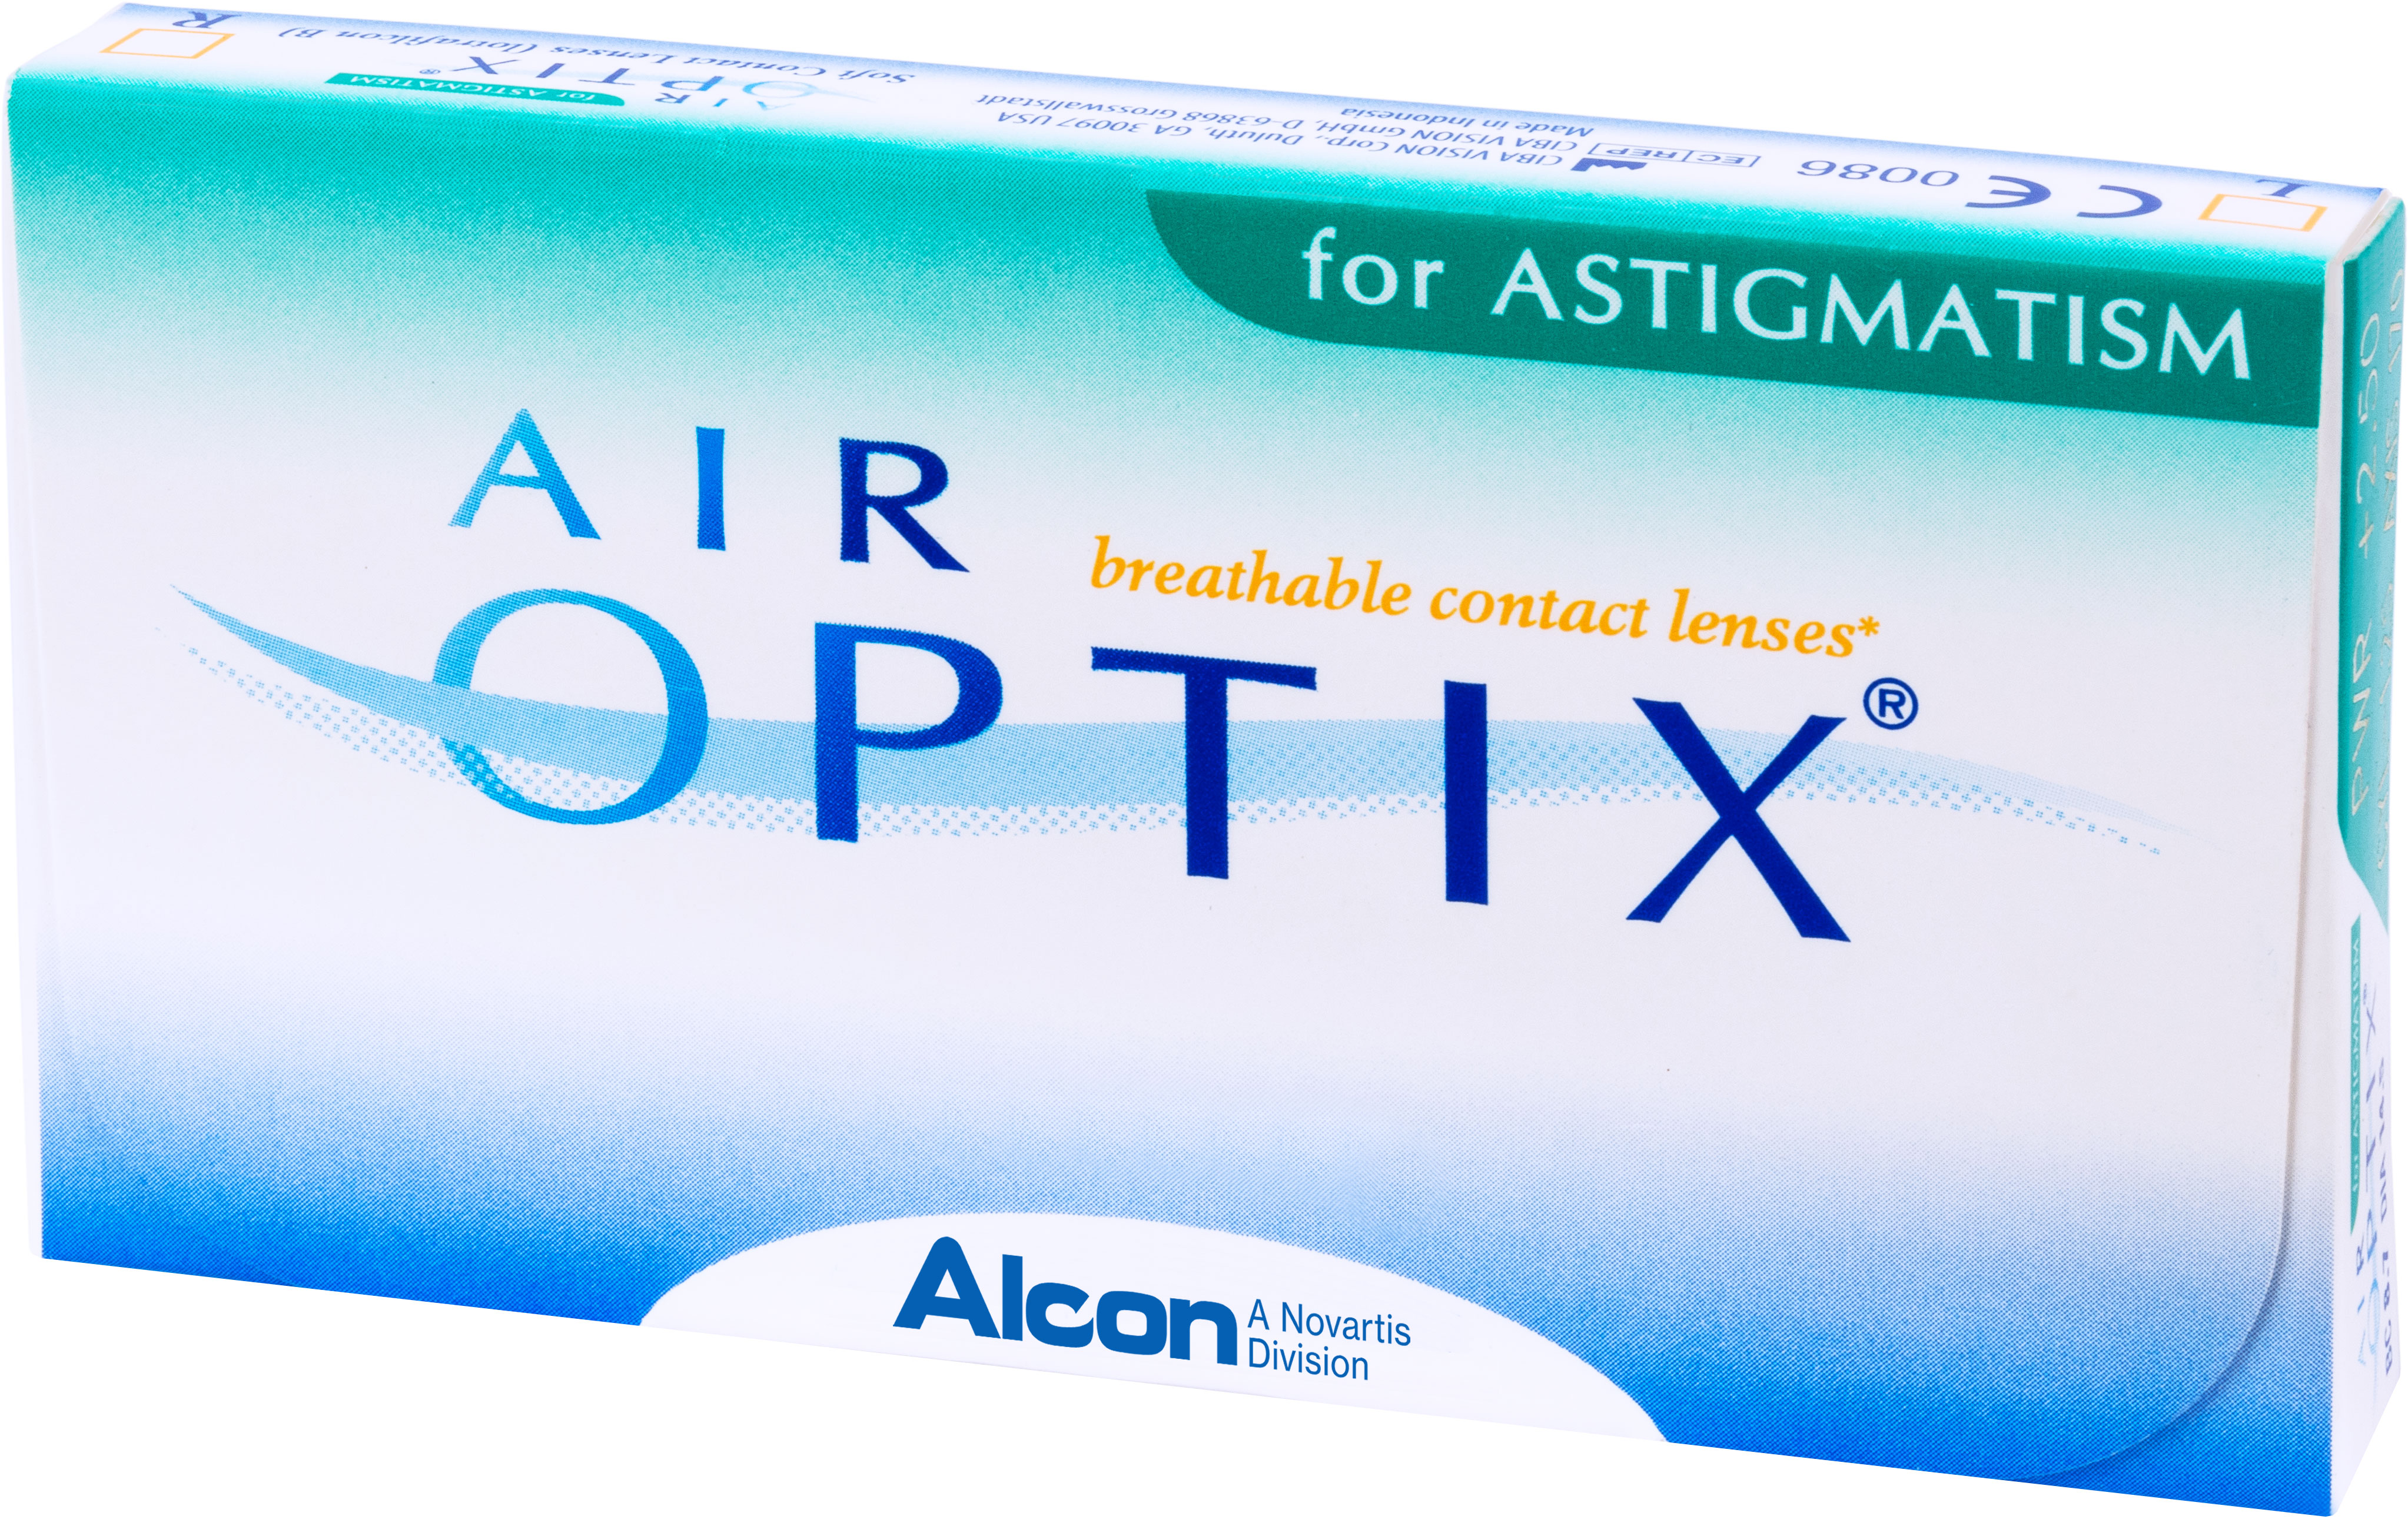 Аlcon контактные линзы Air Optix for Astigmatism 3pk /BC 8.7/DIA14.5/PWR -2.00/CYL -2.25/AXIS 30100022094with Hydraclear